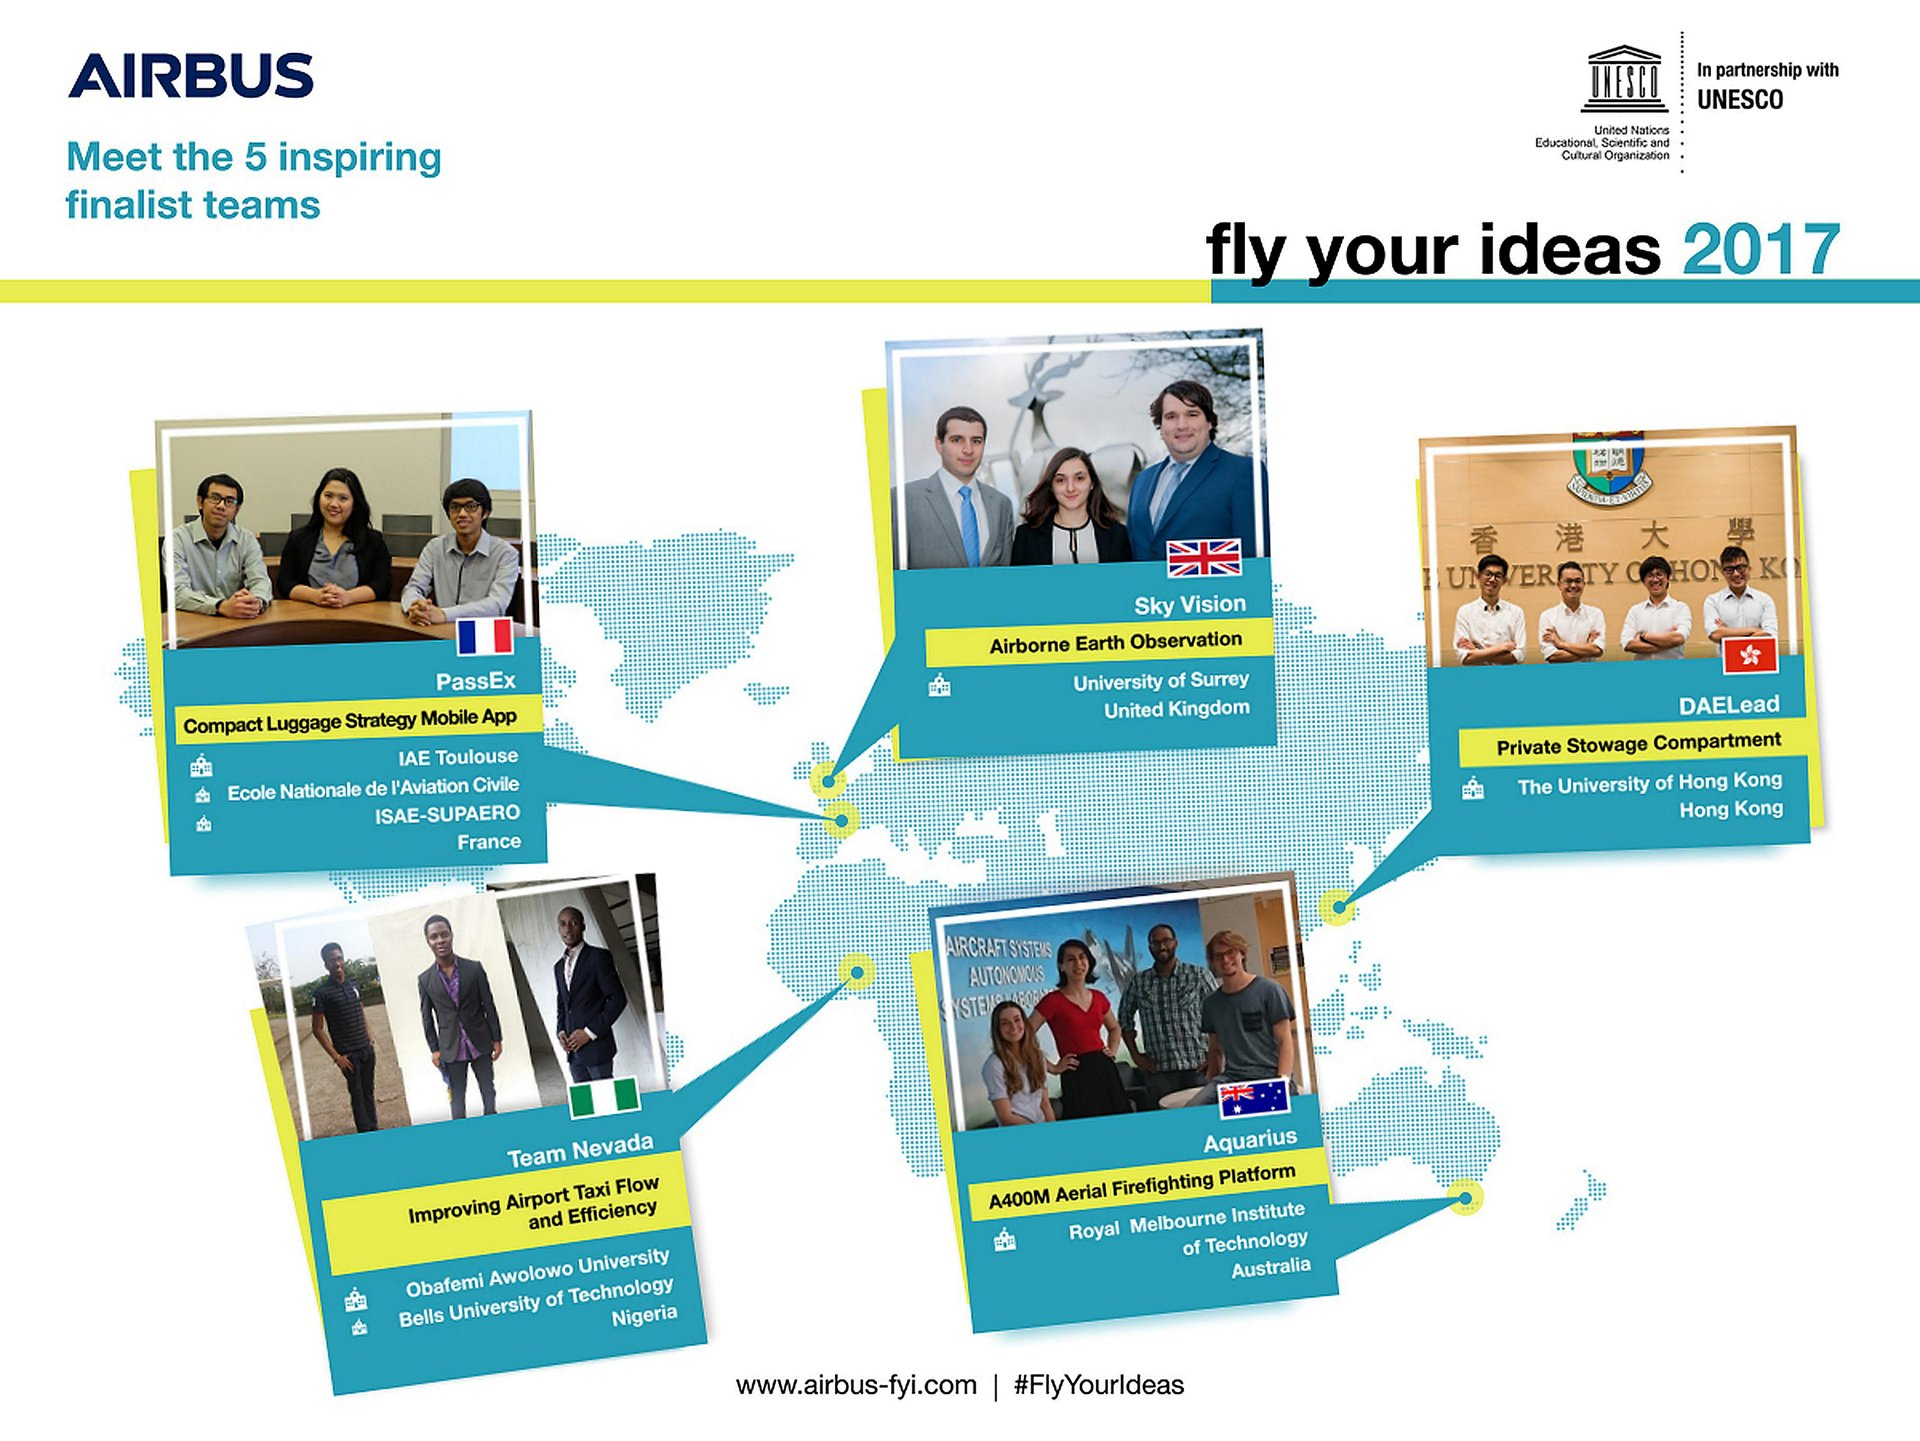 Airbus has shortlisted the five finalist student teams competing in the fifth edition of the Fly Your Ideas challenge